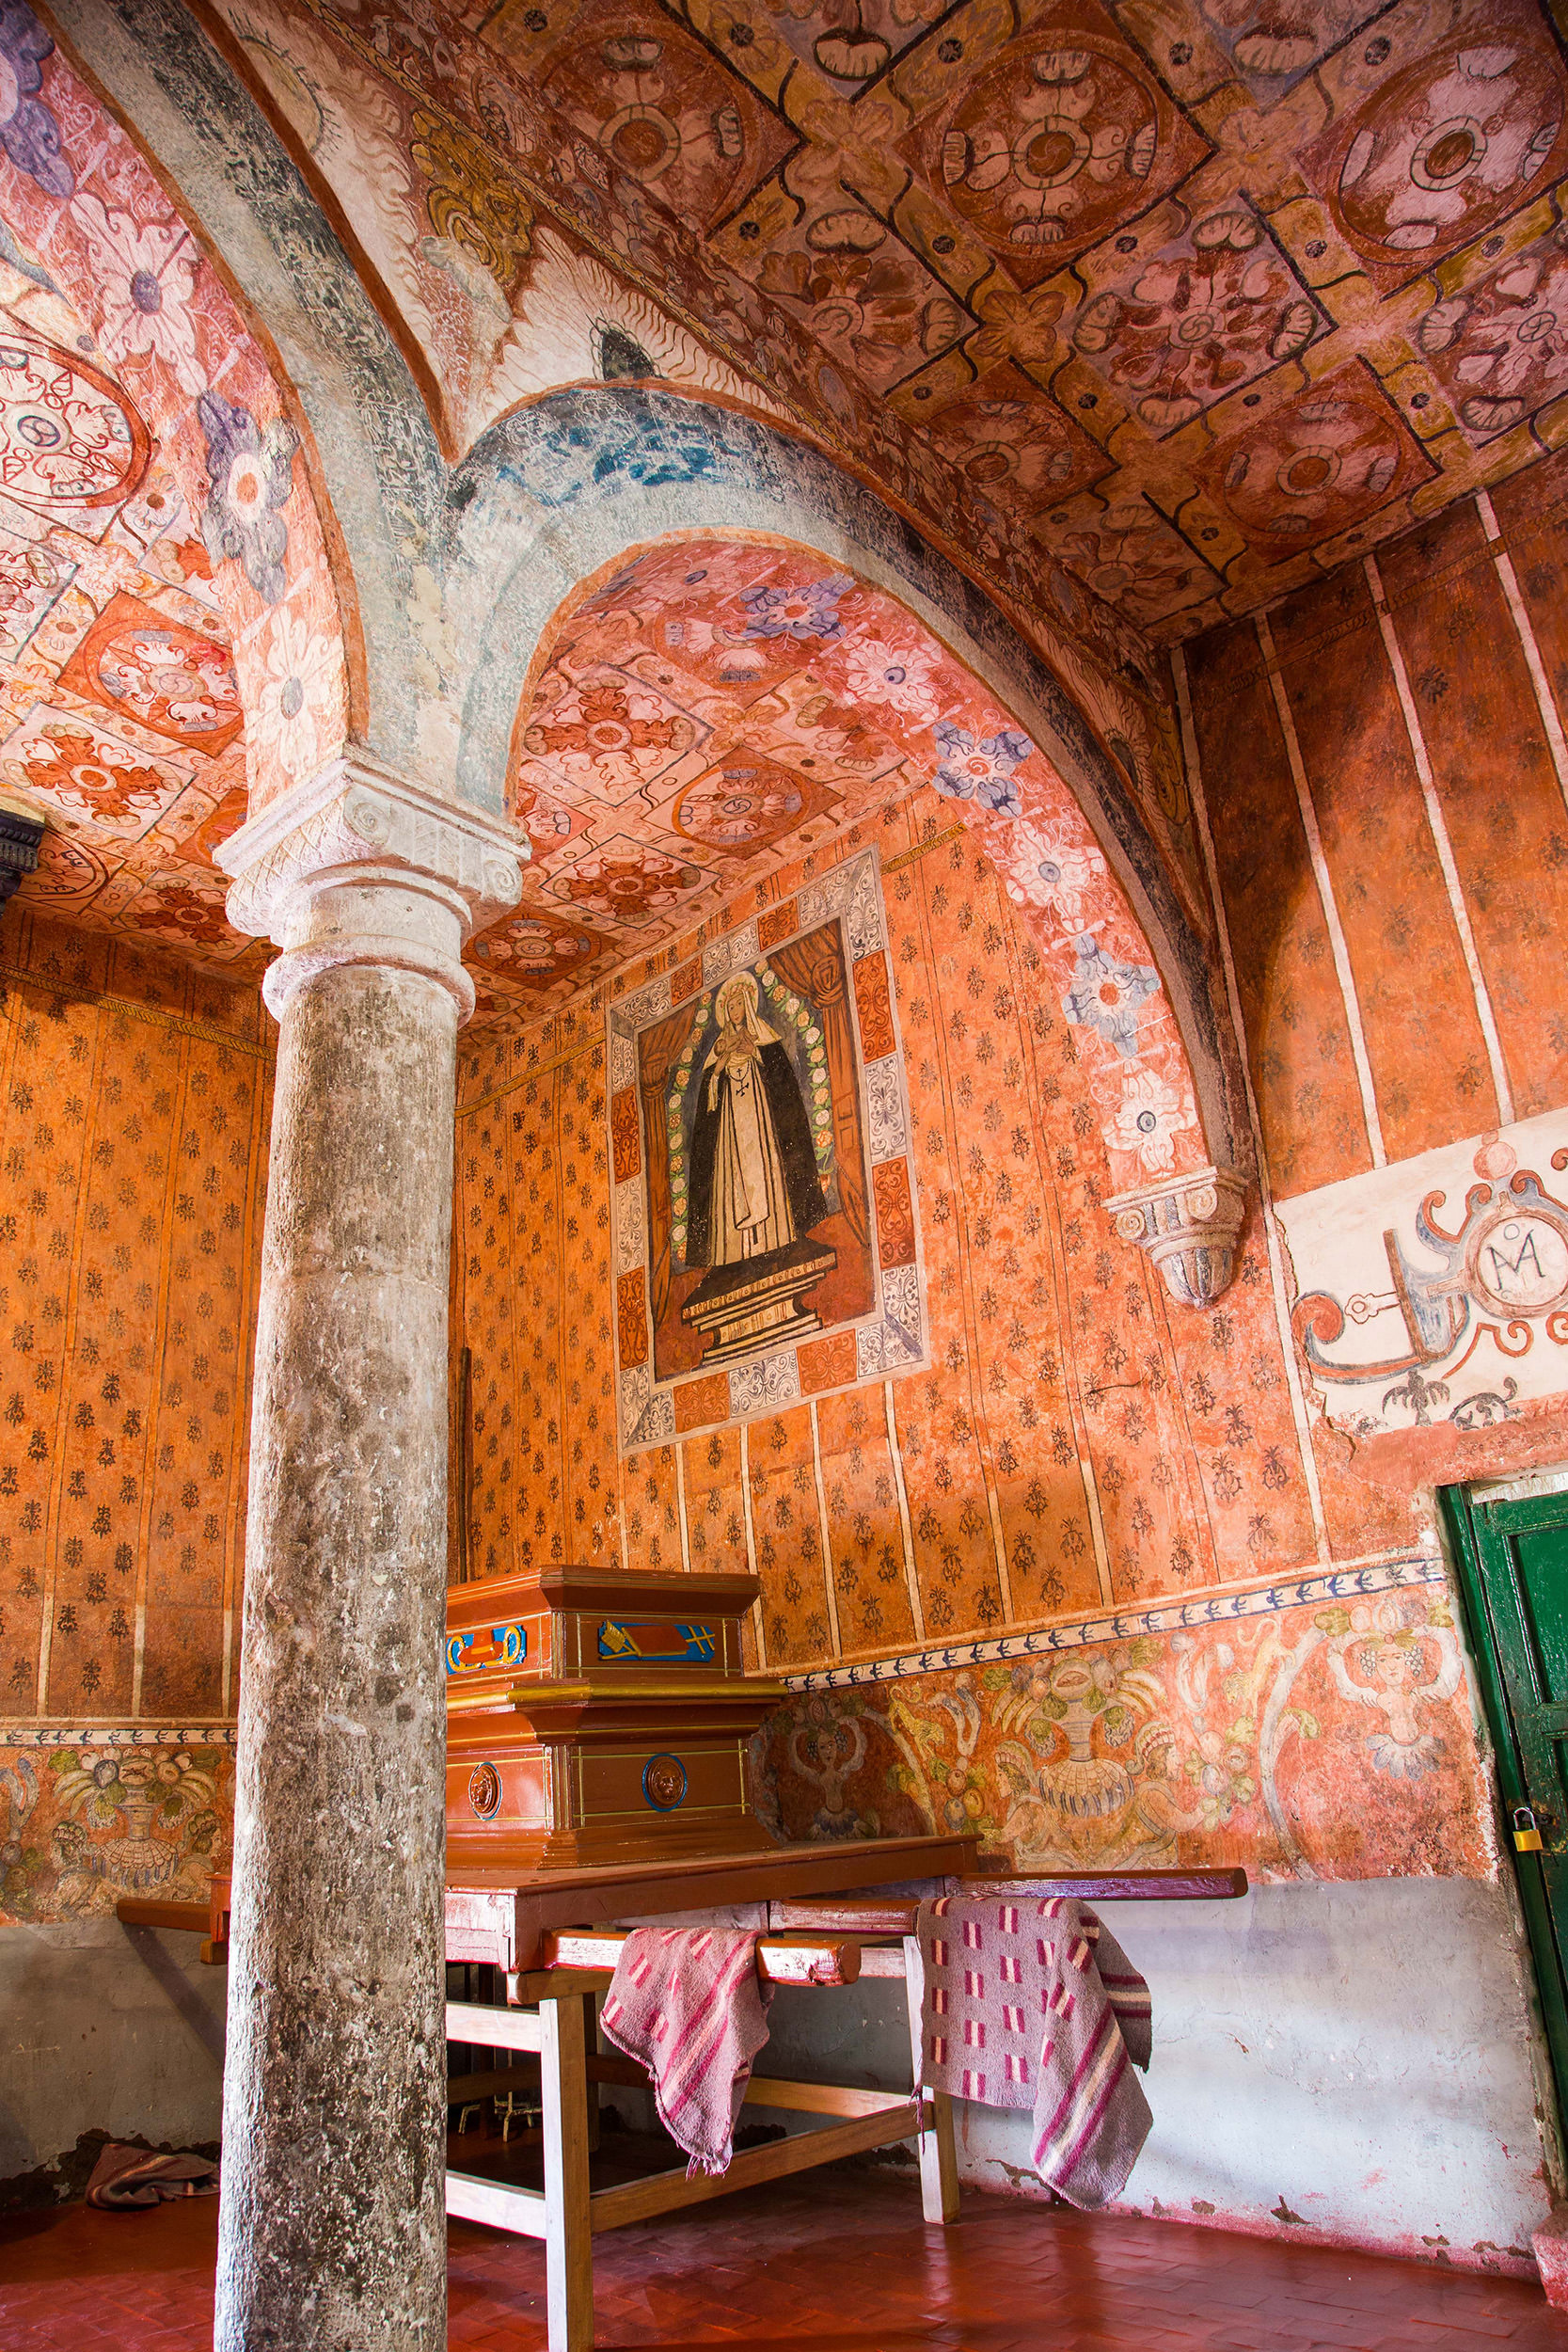 Fig. 16 View of textile murals and ceiling murals made to imitate ceramic tiles. Church of Oropesa, Quispicanchi Province. Photo by Raúl Montero Quispe.